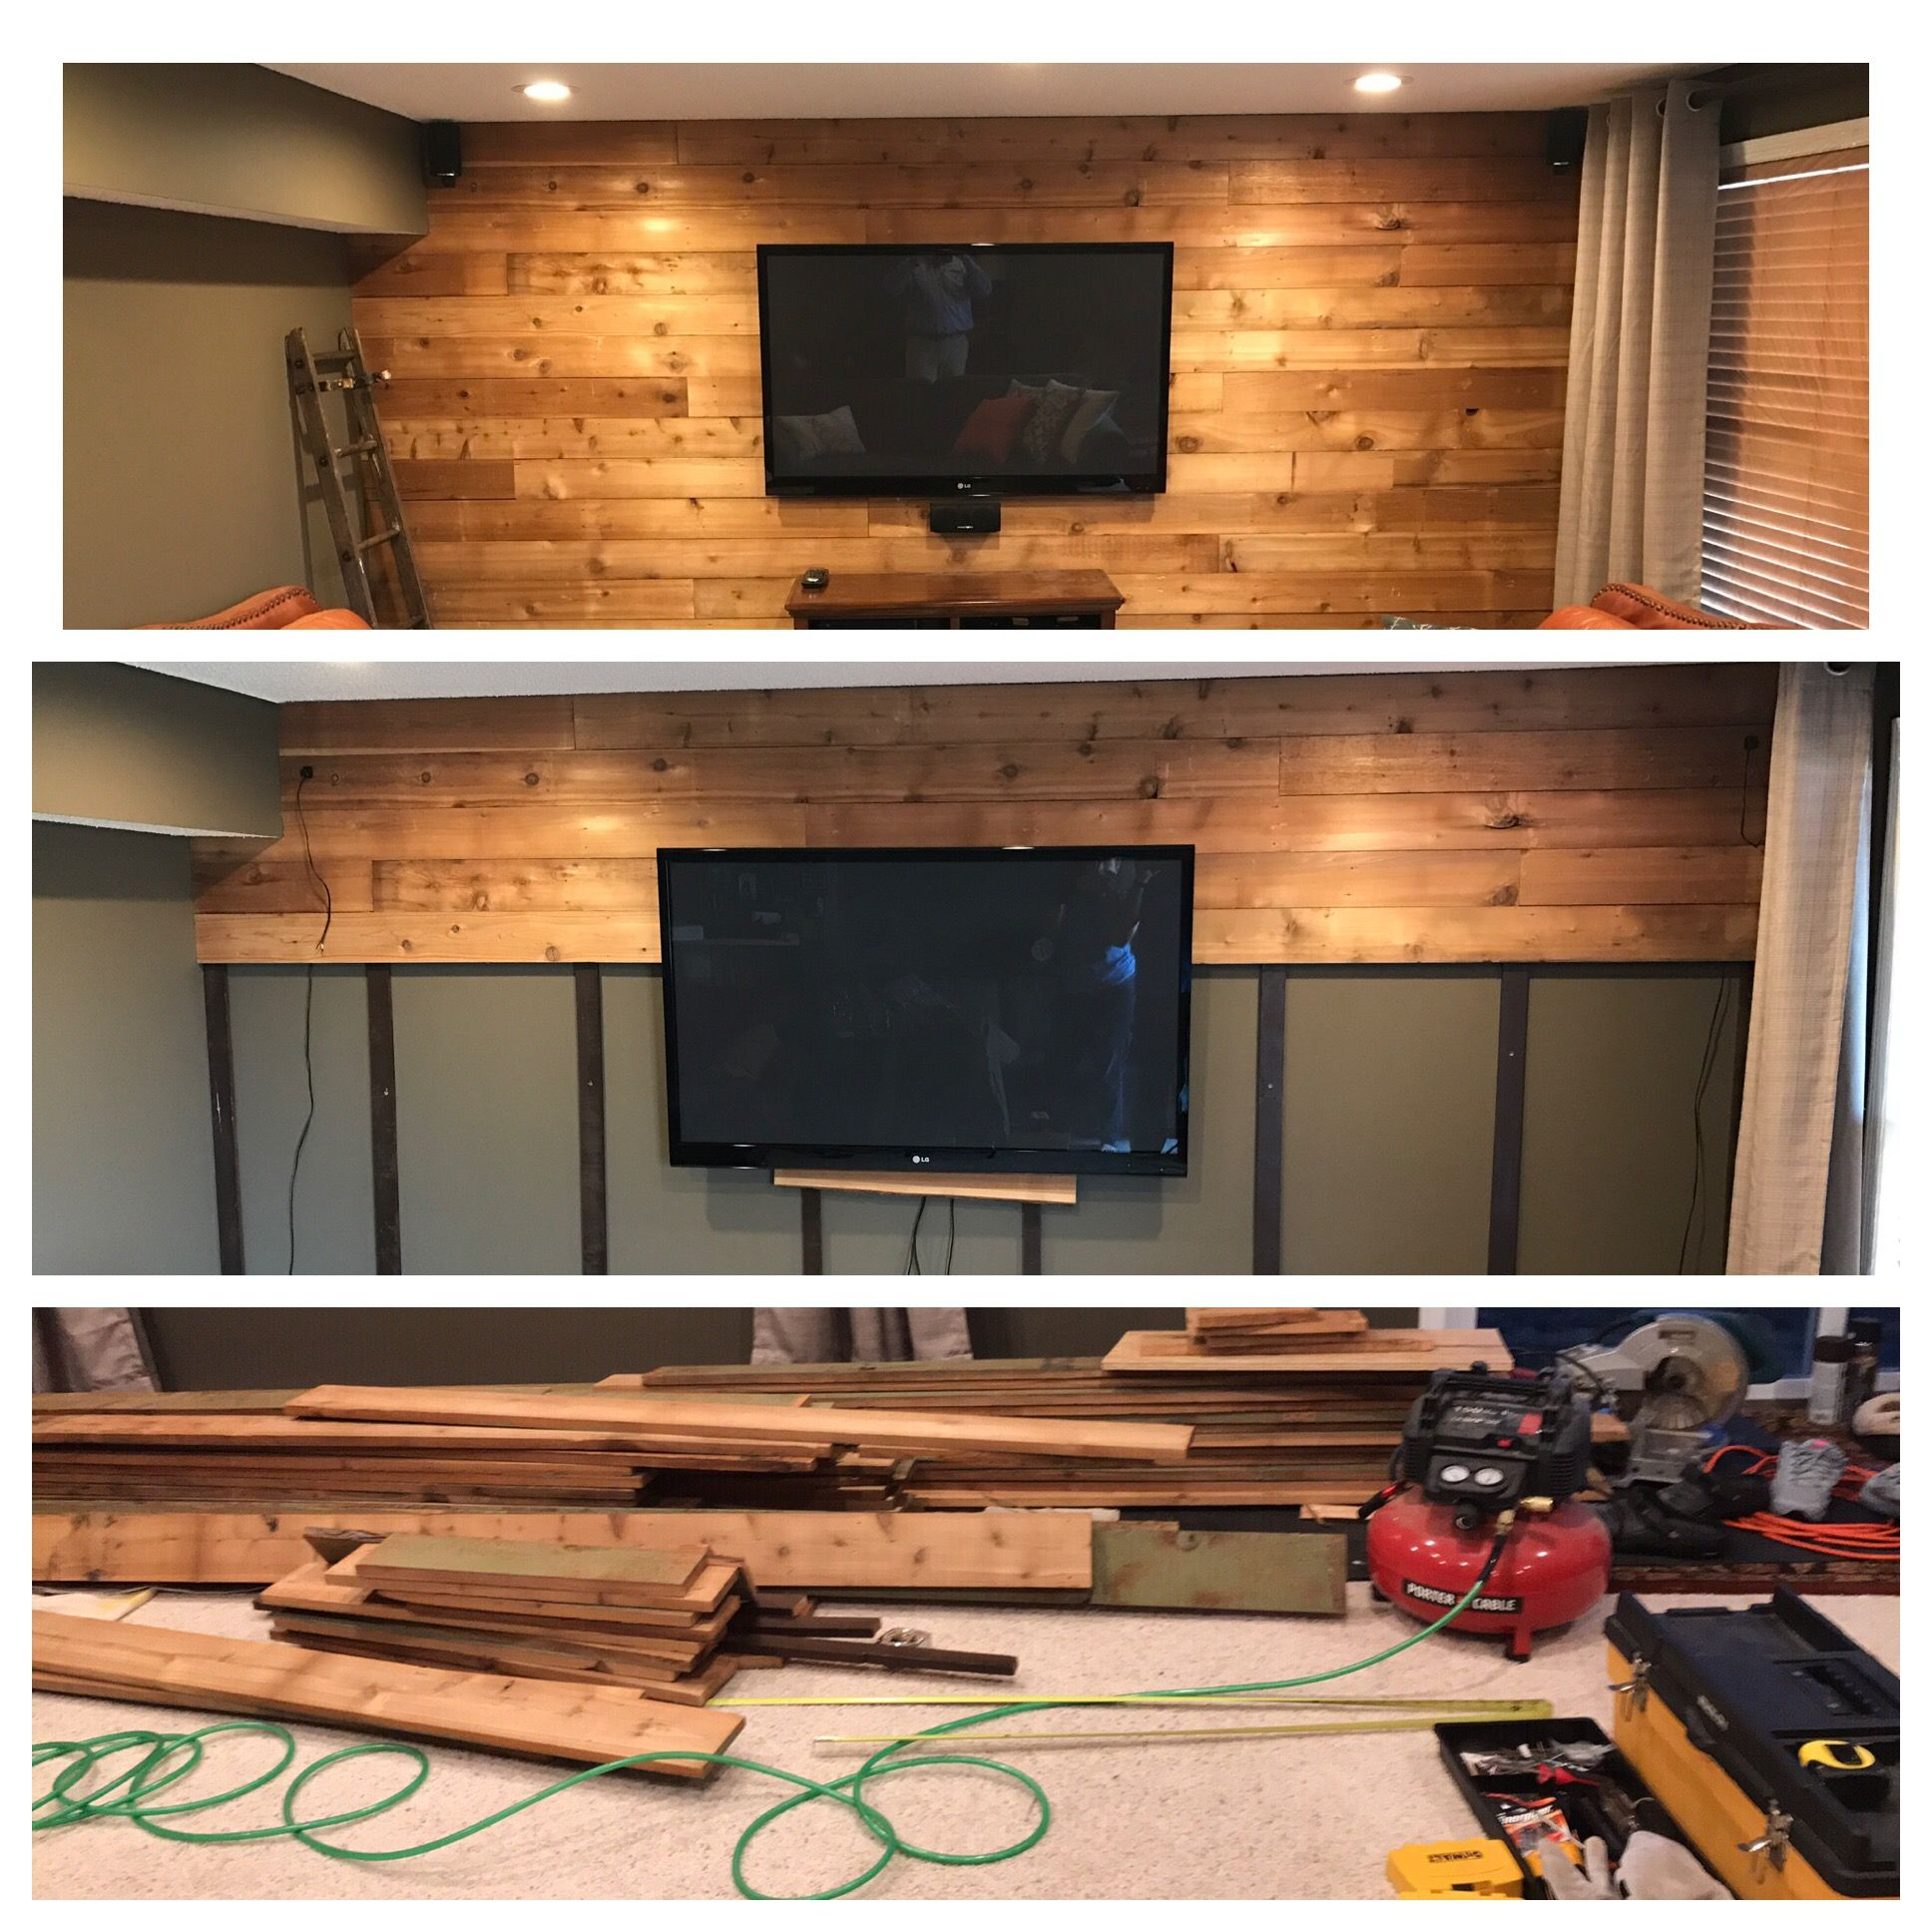 Using Cedar For Accent Wall: Recycled Raw Cedar Siding To Accent Wall